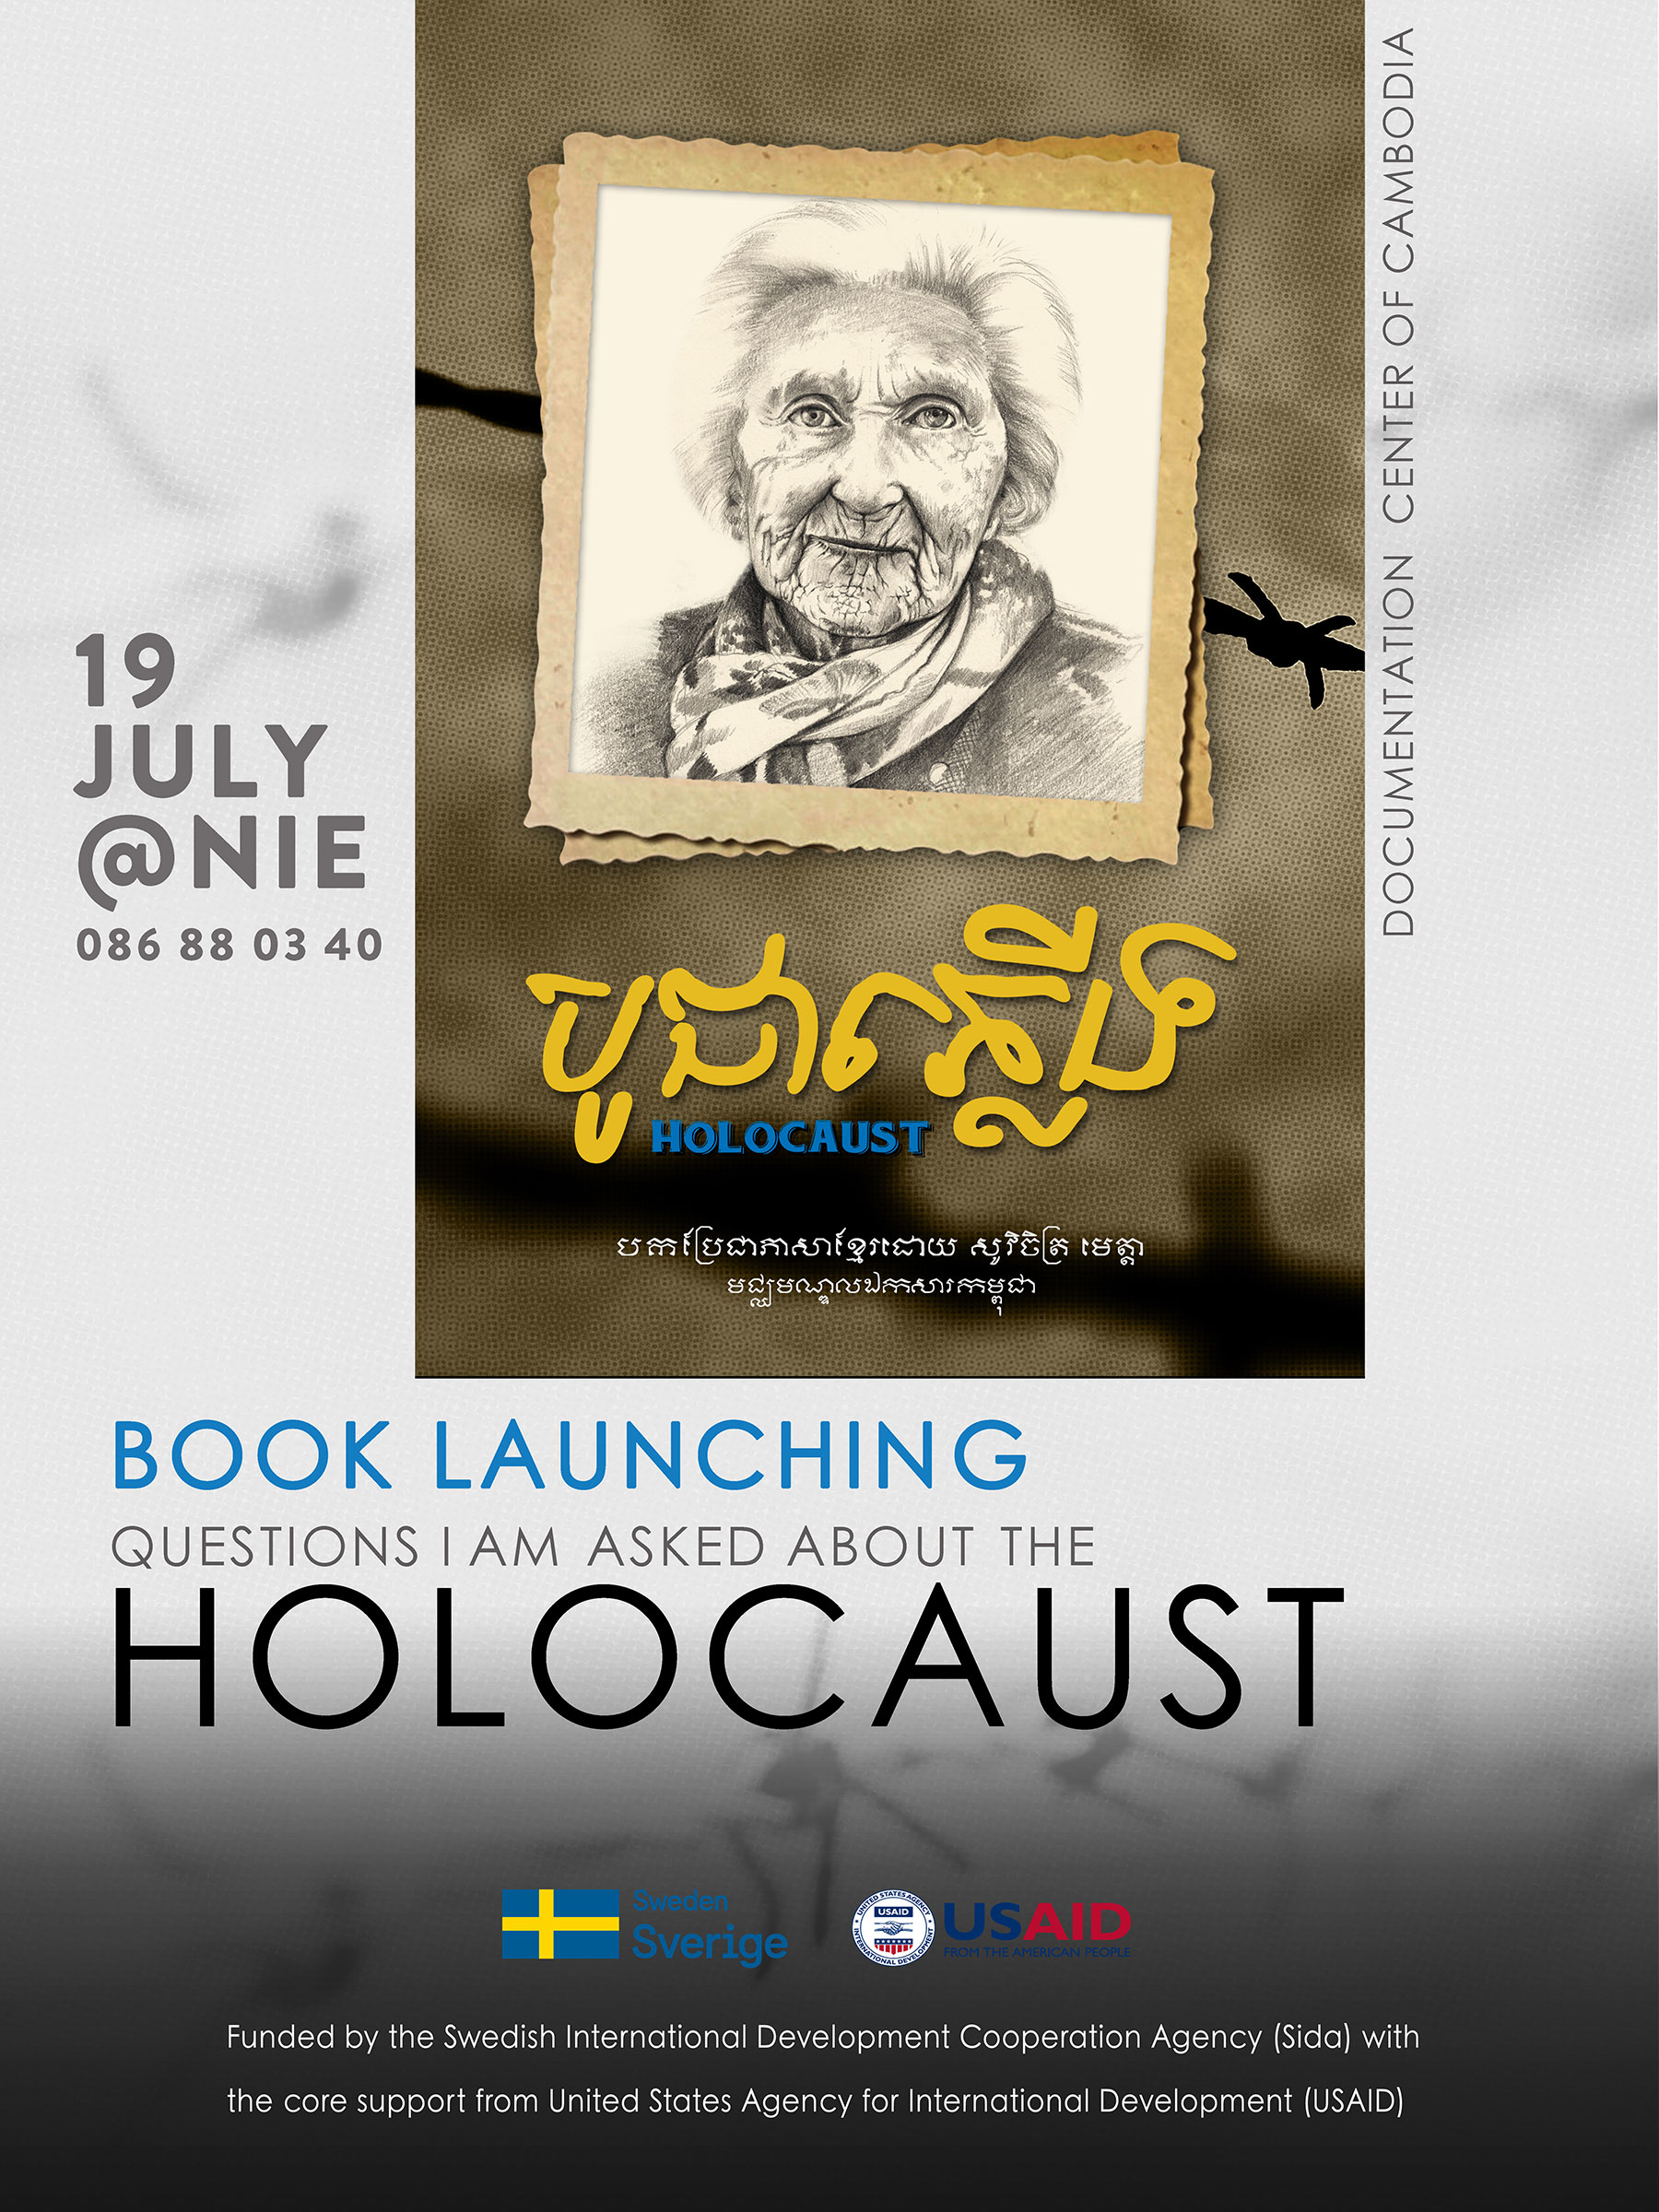 HOLOCAUST SURVIVOR'S EXPERIENCES FIRST TRANSLATED INTO CAMBODIAN (19 July 2019)